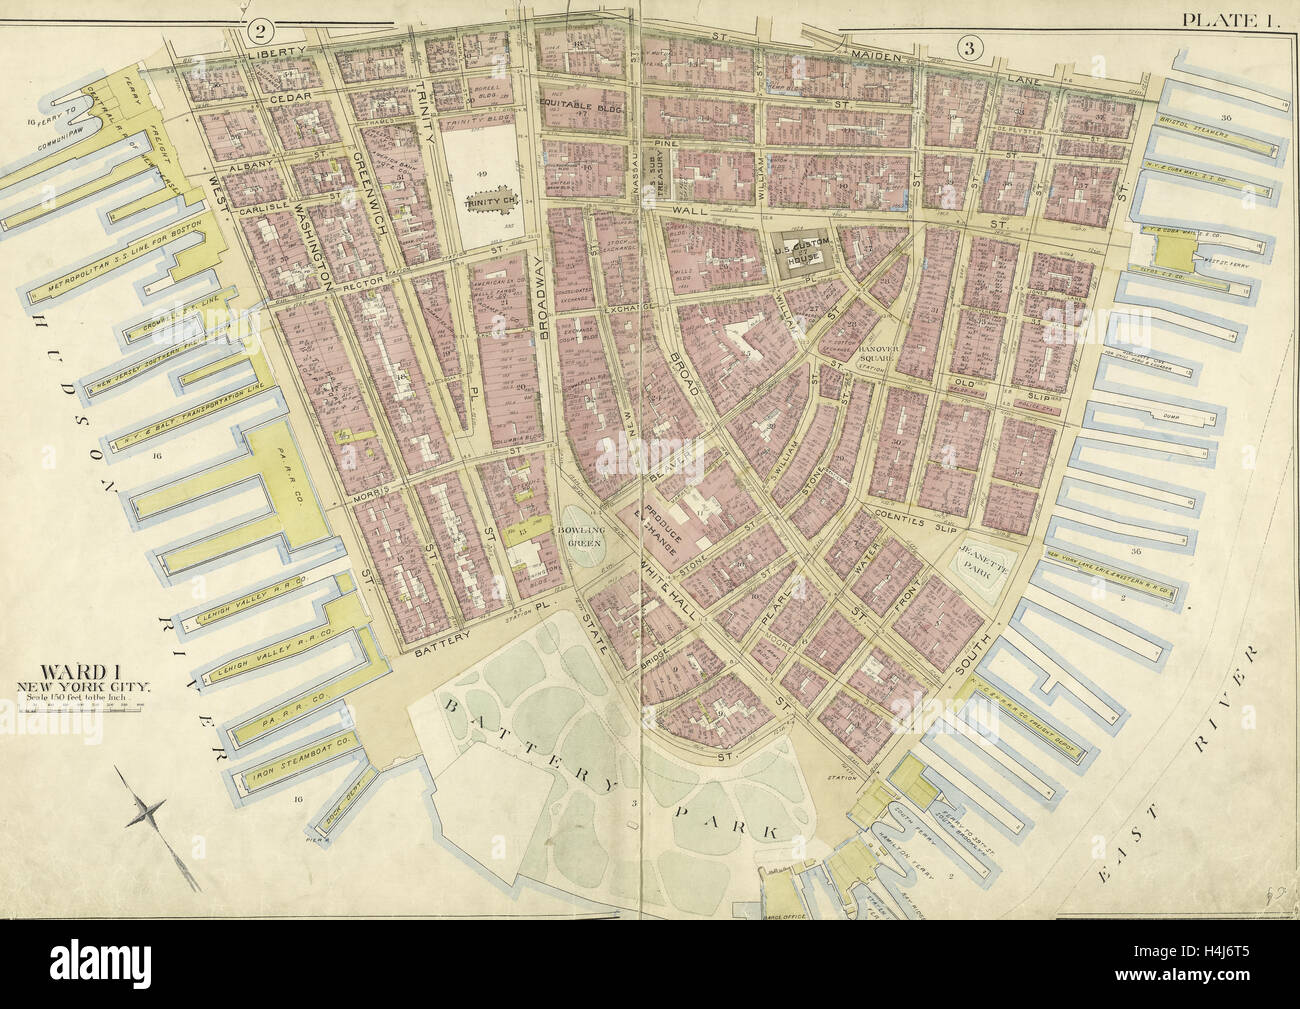 Manhattan Double Page Plate No 1 Map Bounded By Liberty St